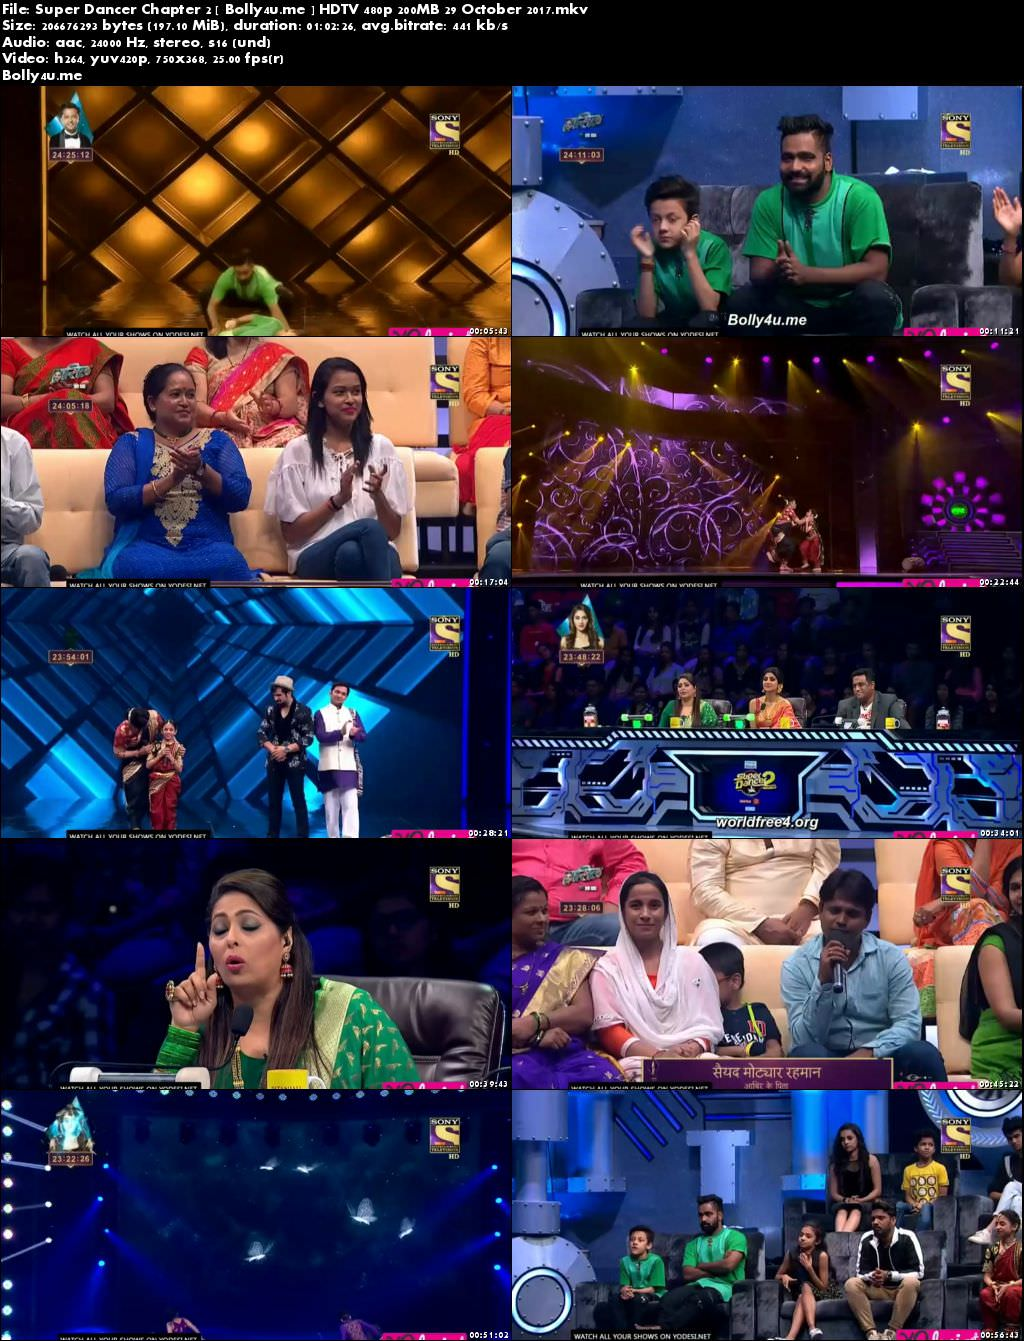 Super Dancer Chapter 2 HDTV 480p 200MB 29 October 2017 Download